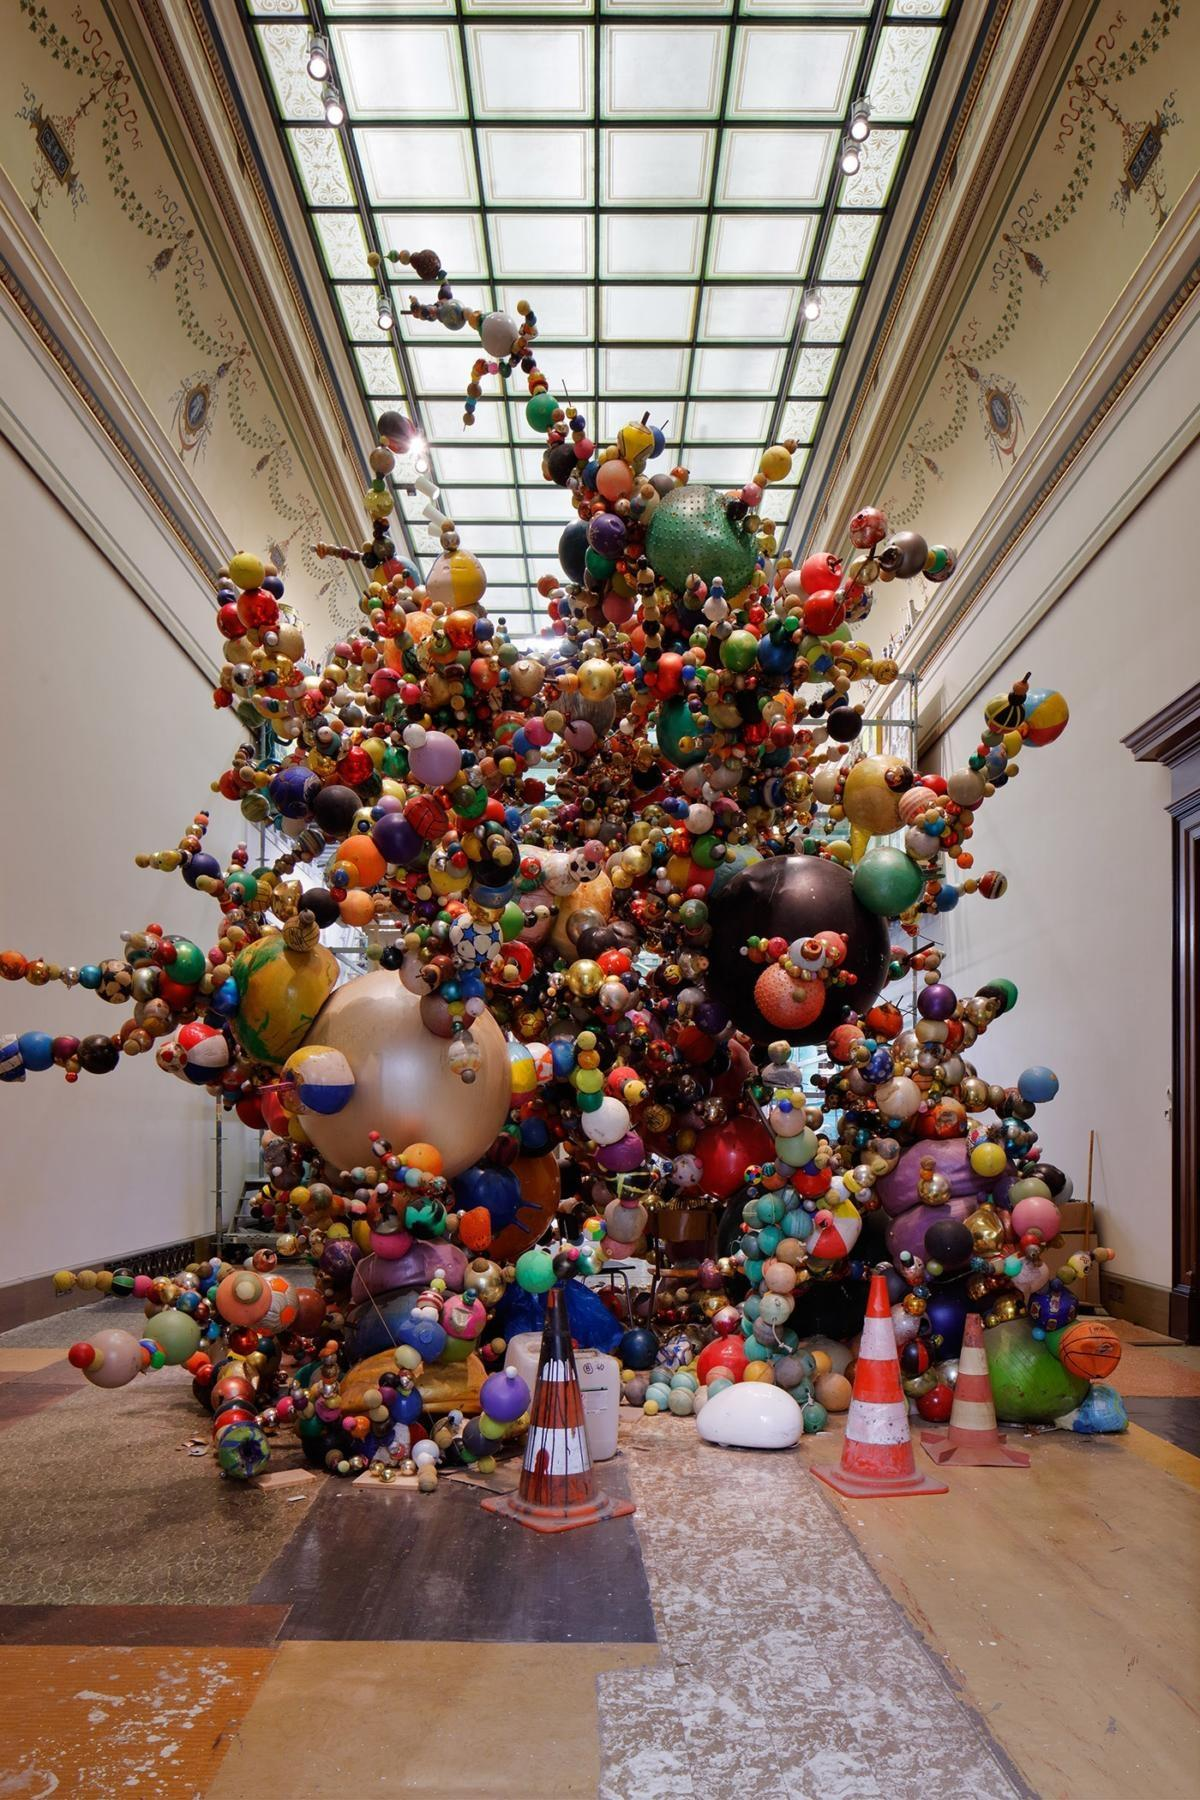 'Nervous Trees' by Krištof Kintera at the Galerie Rudolfinum